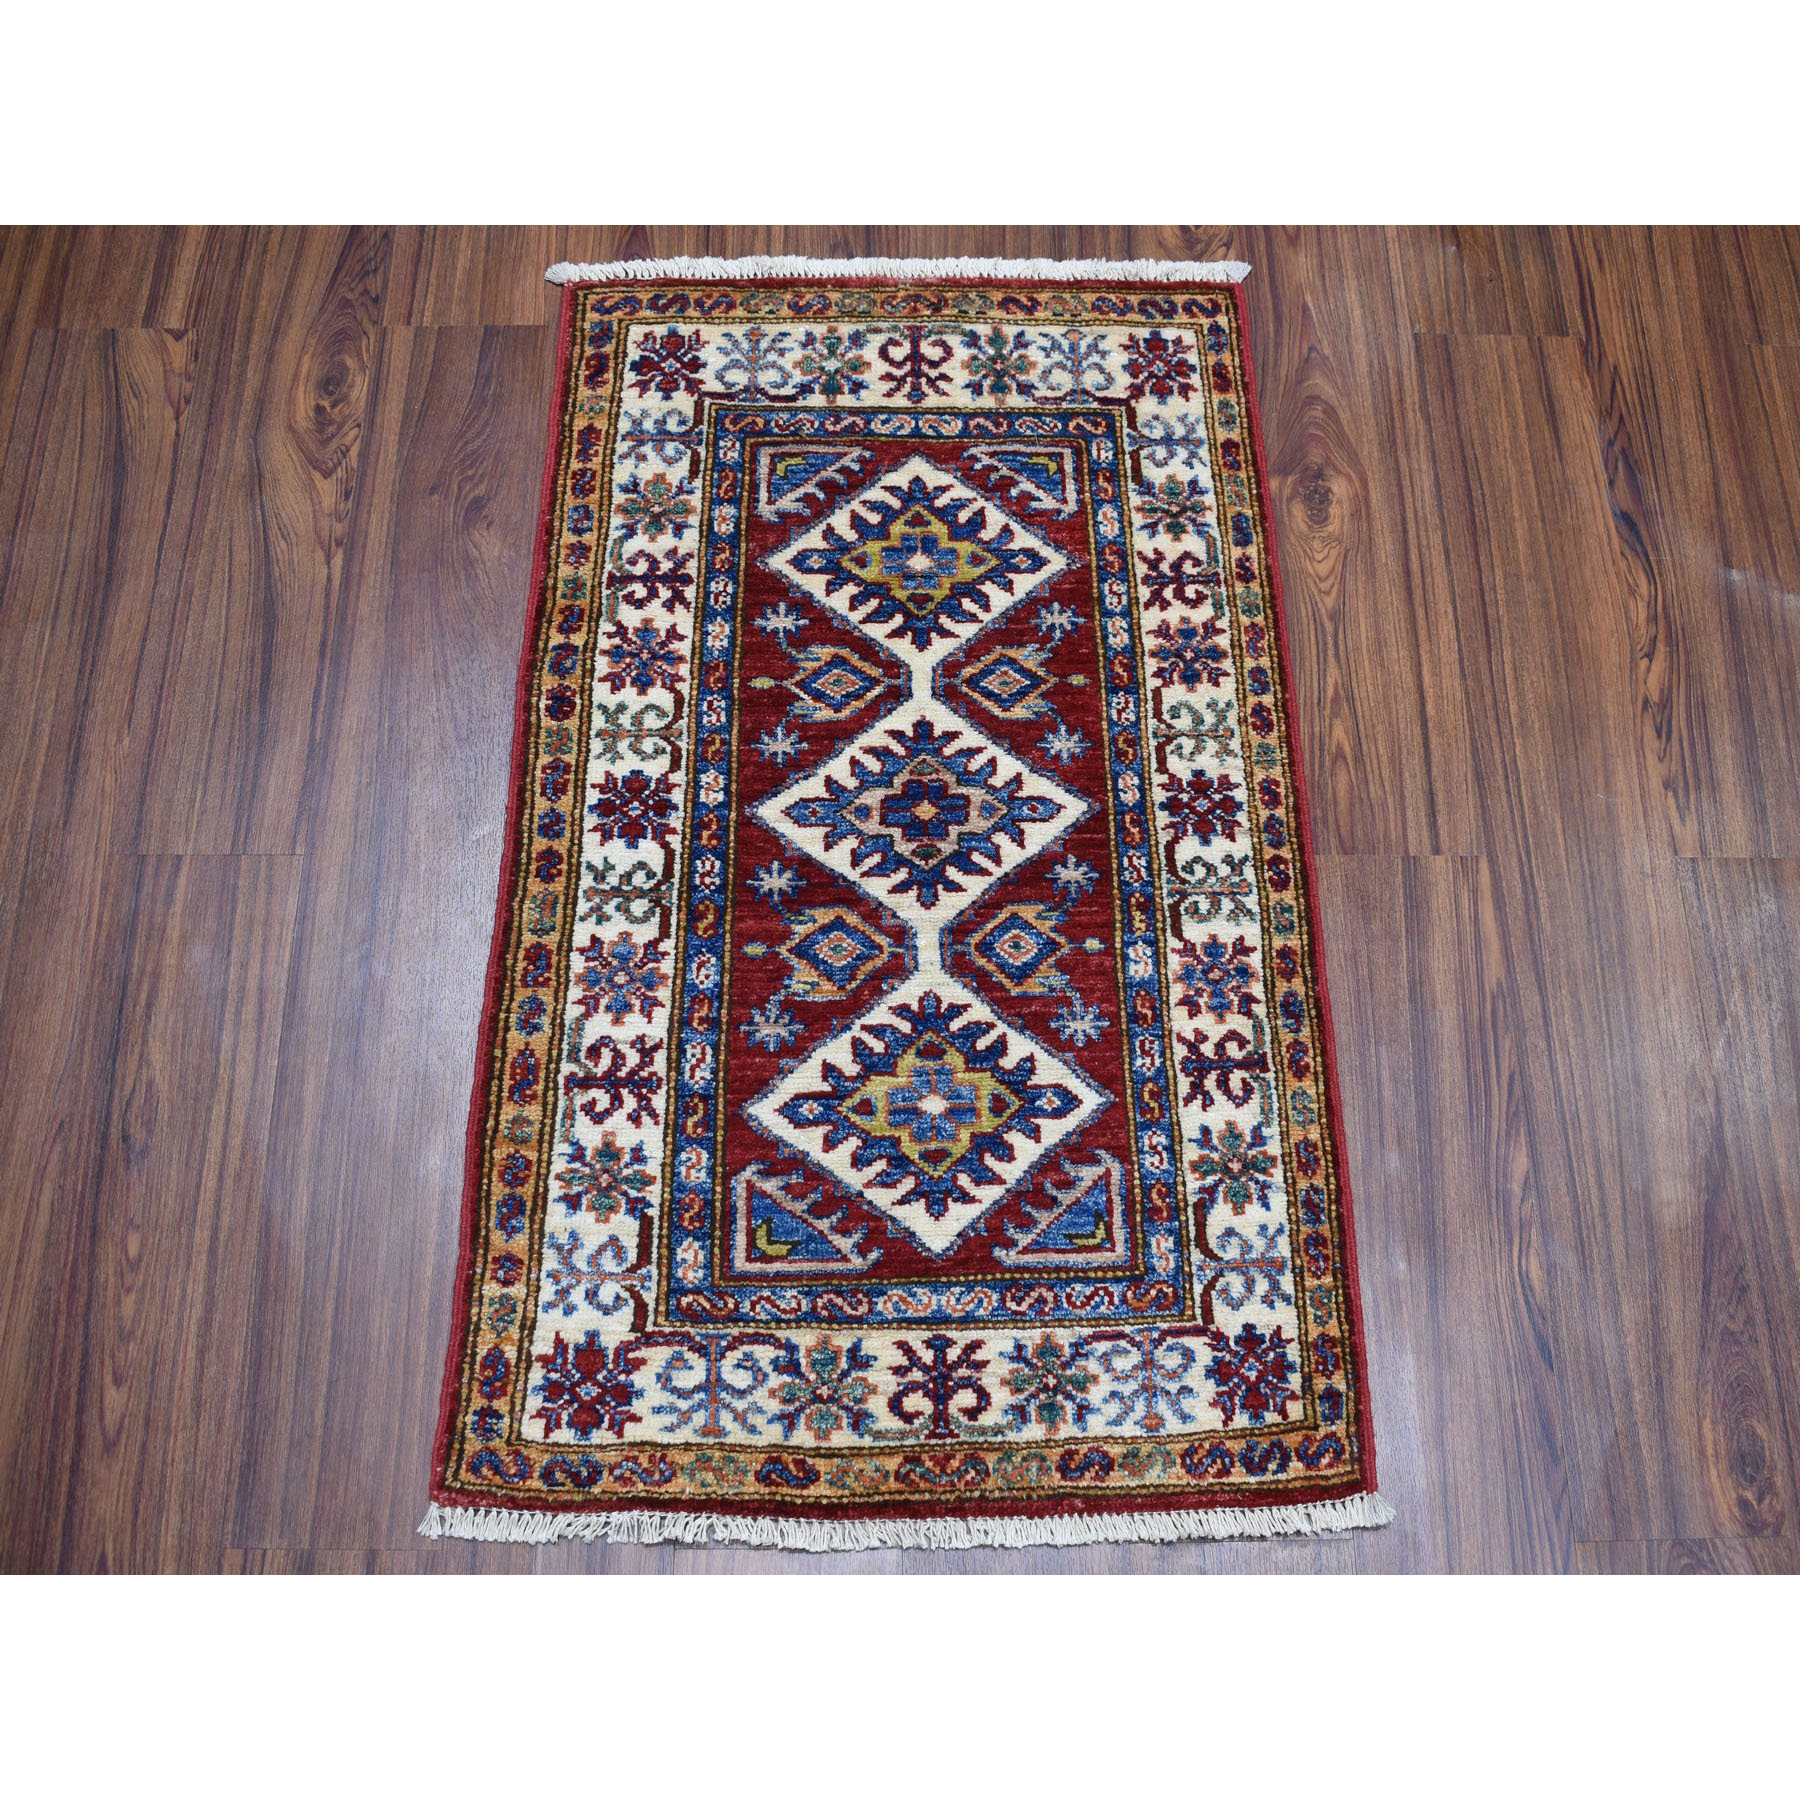 2-x3-1  Red Super Kazak Geometric Design Pure Wool Hand-Knotted Oriental Rug